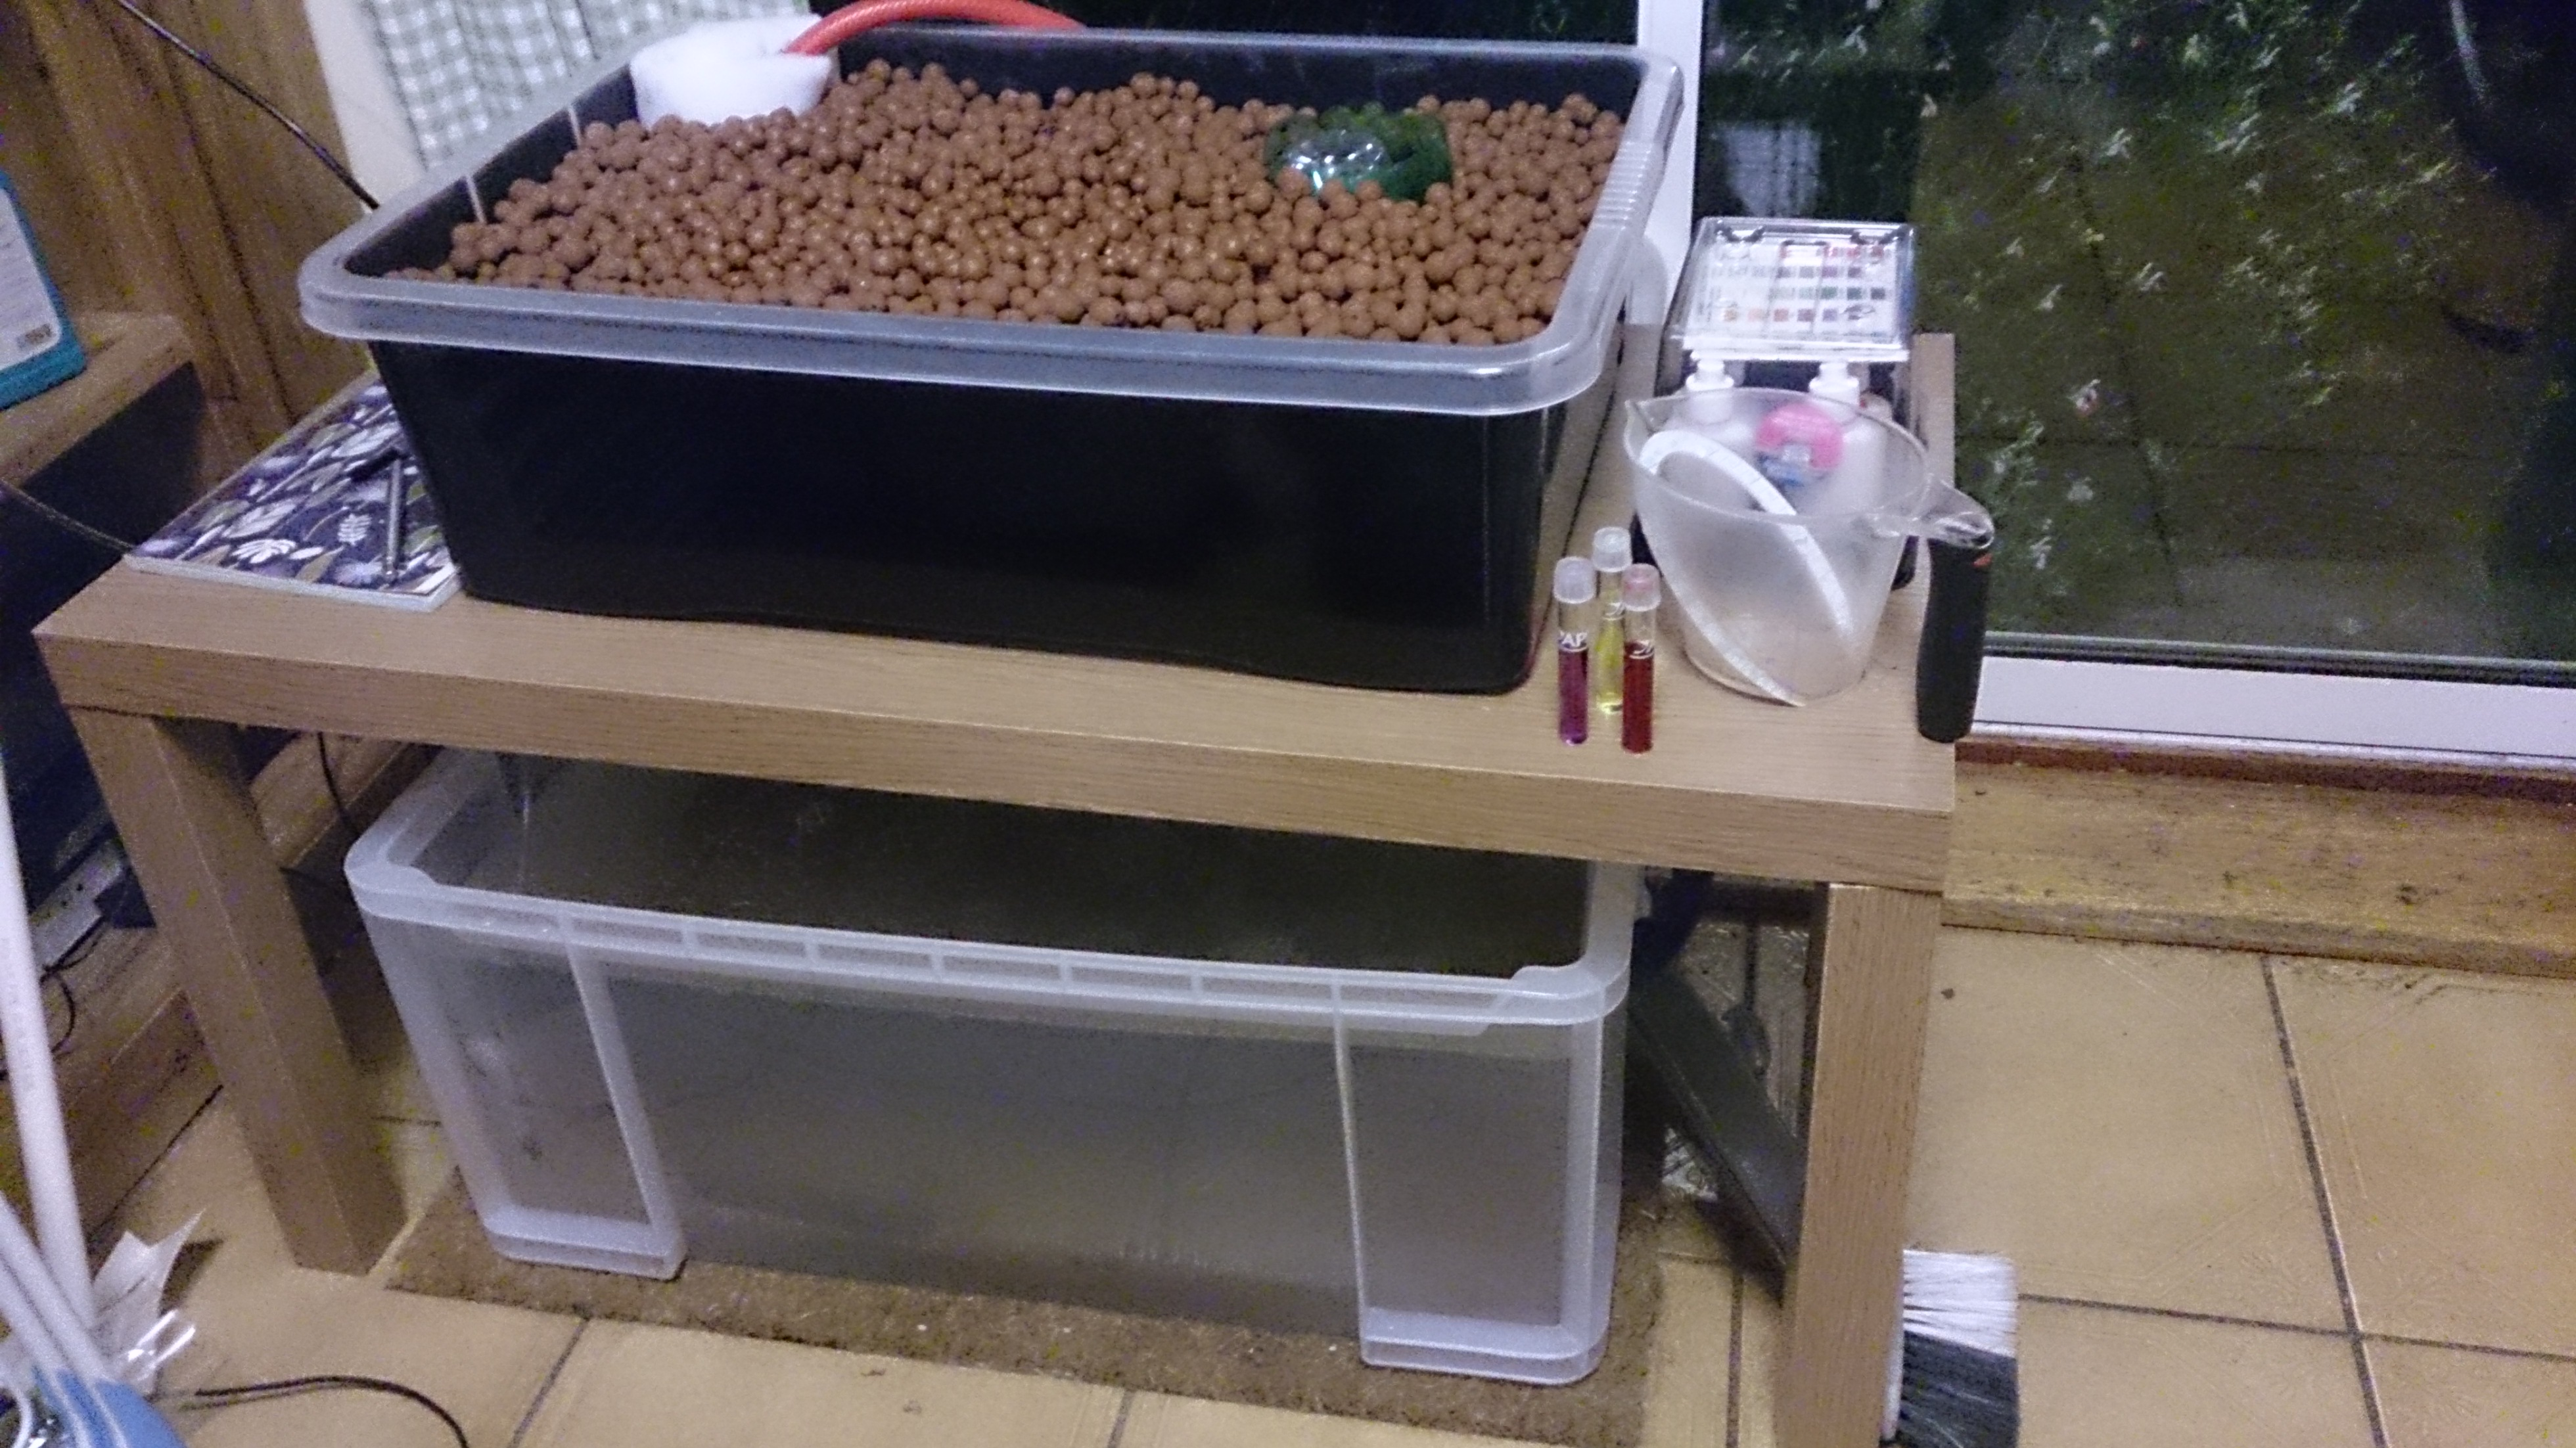 Jasmin s Home Aquaponic System – Experiments In Aquaponics